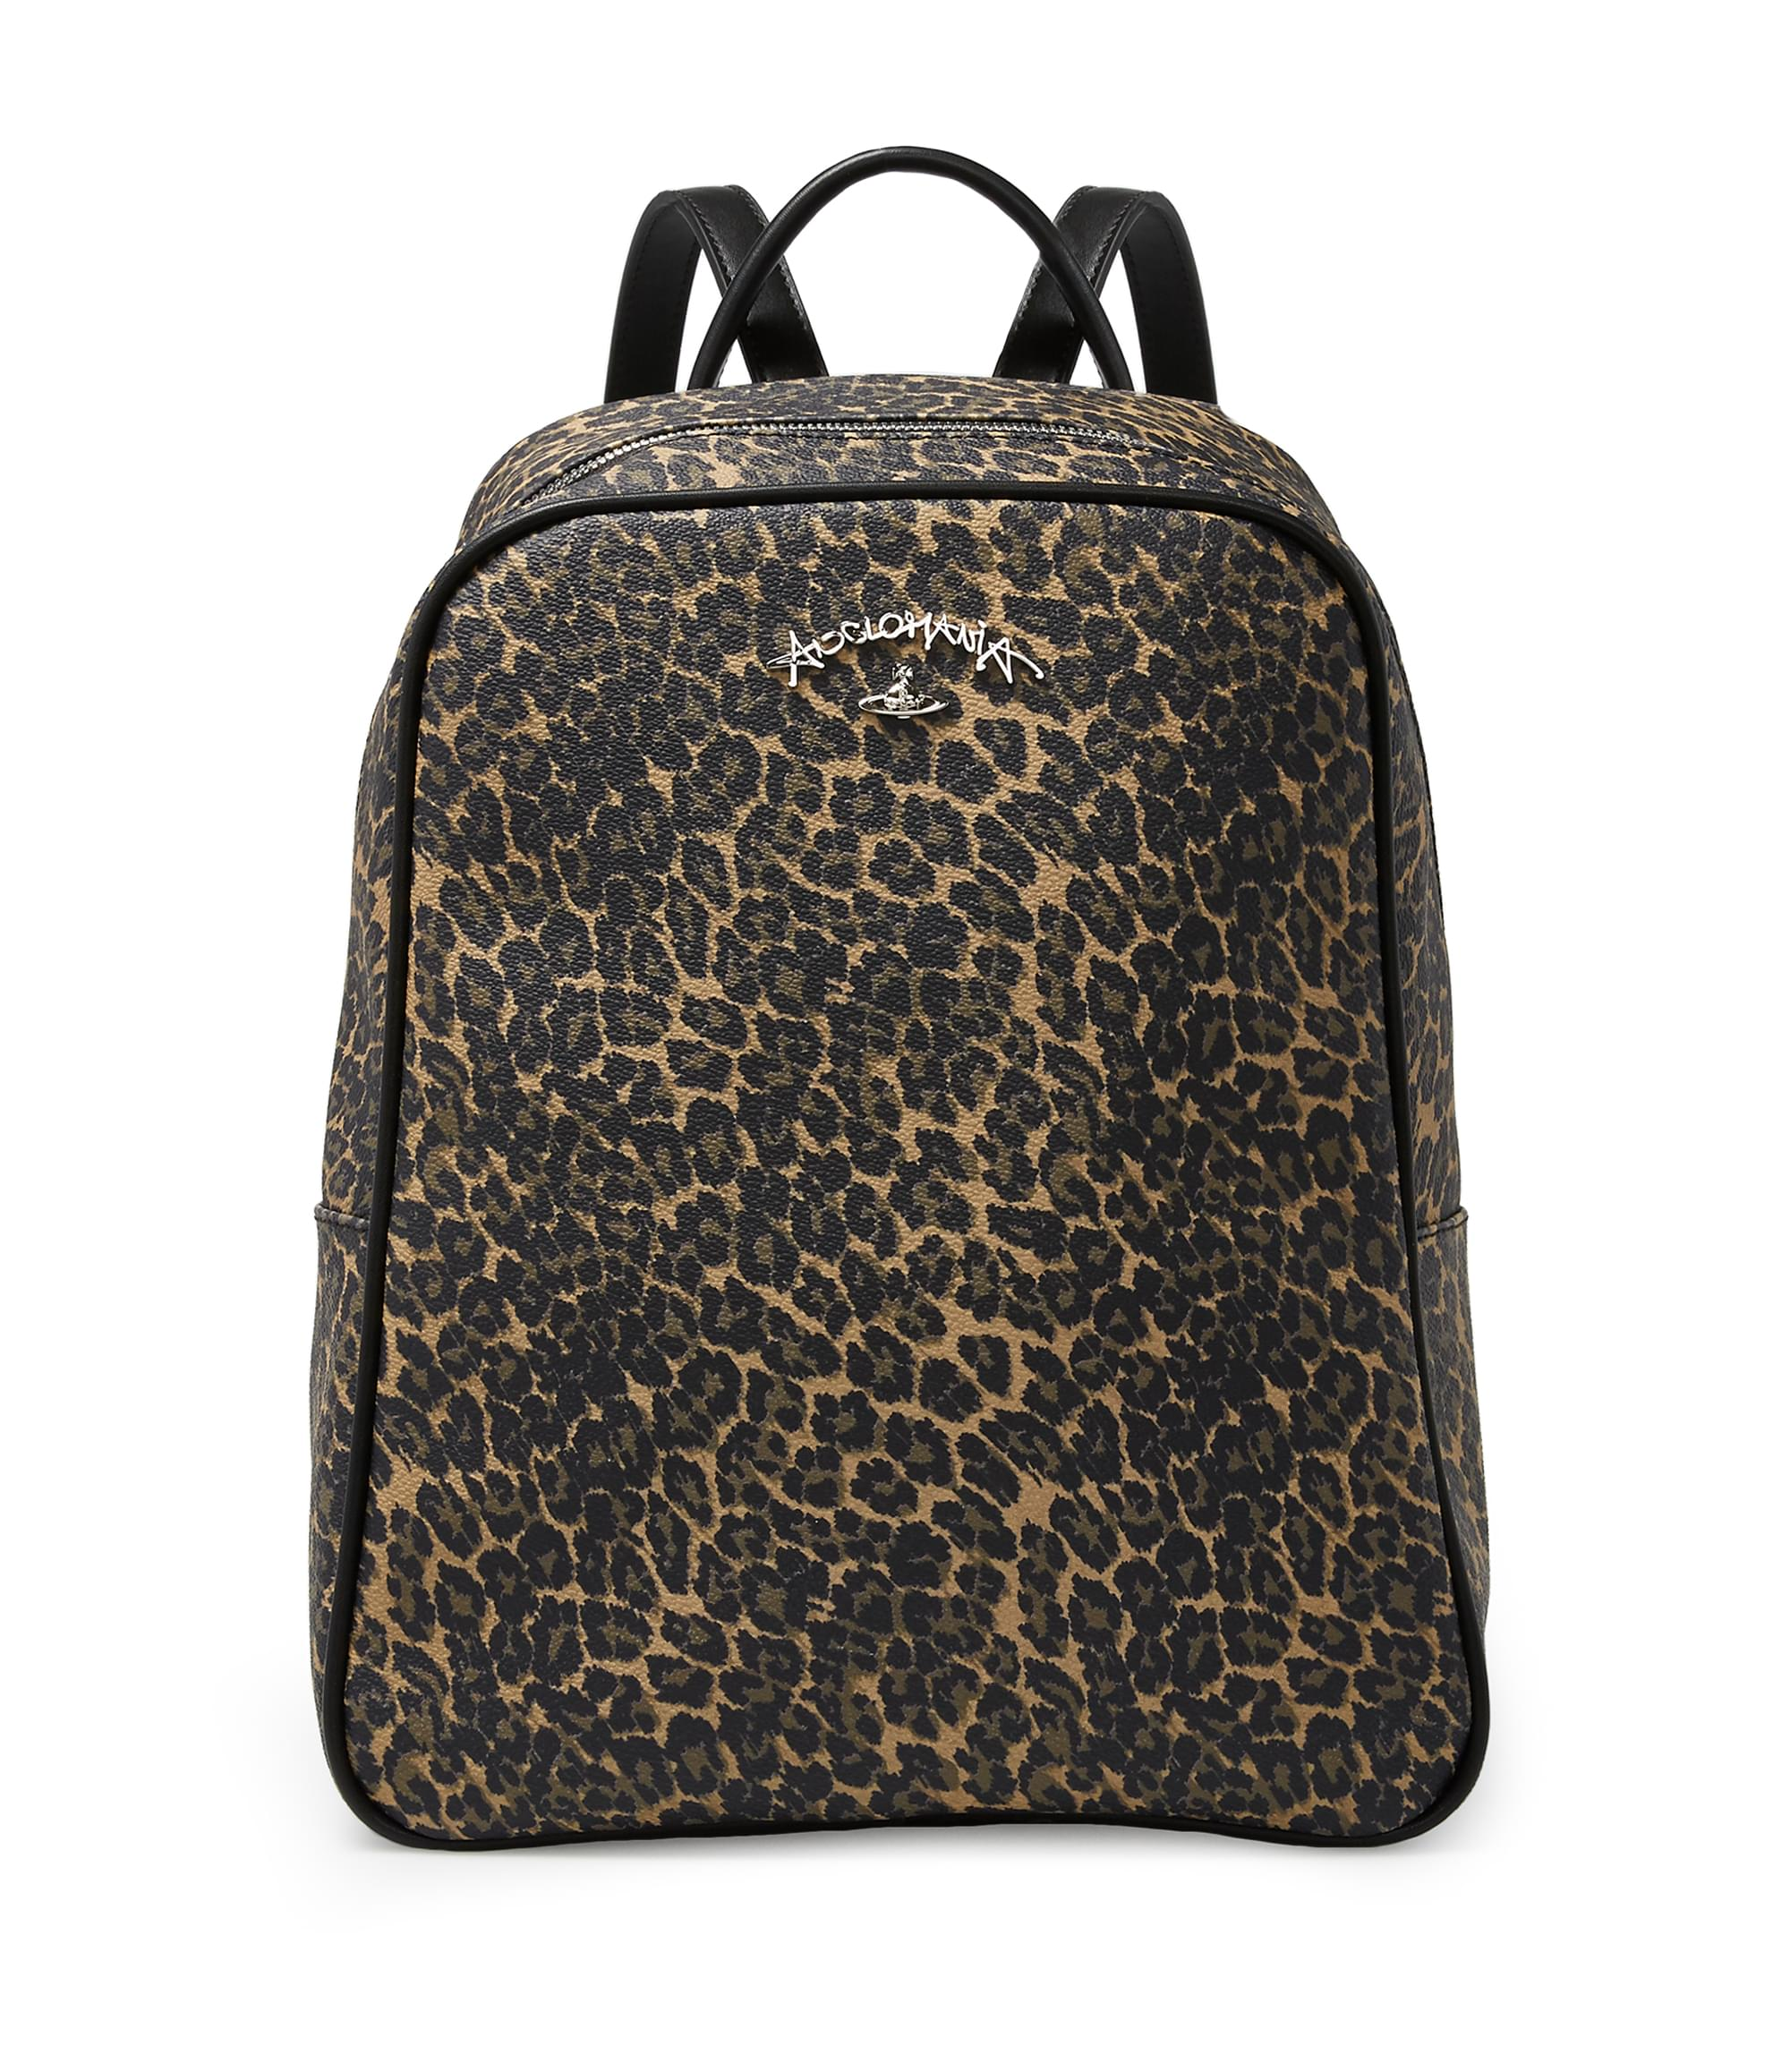 Vivienne Westwood Leopard Backpack 190038 Green